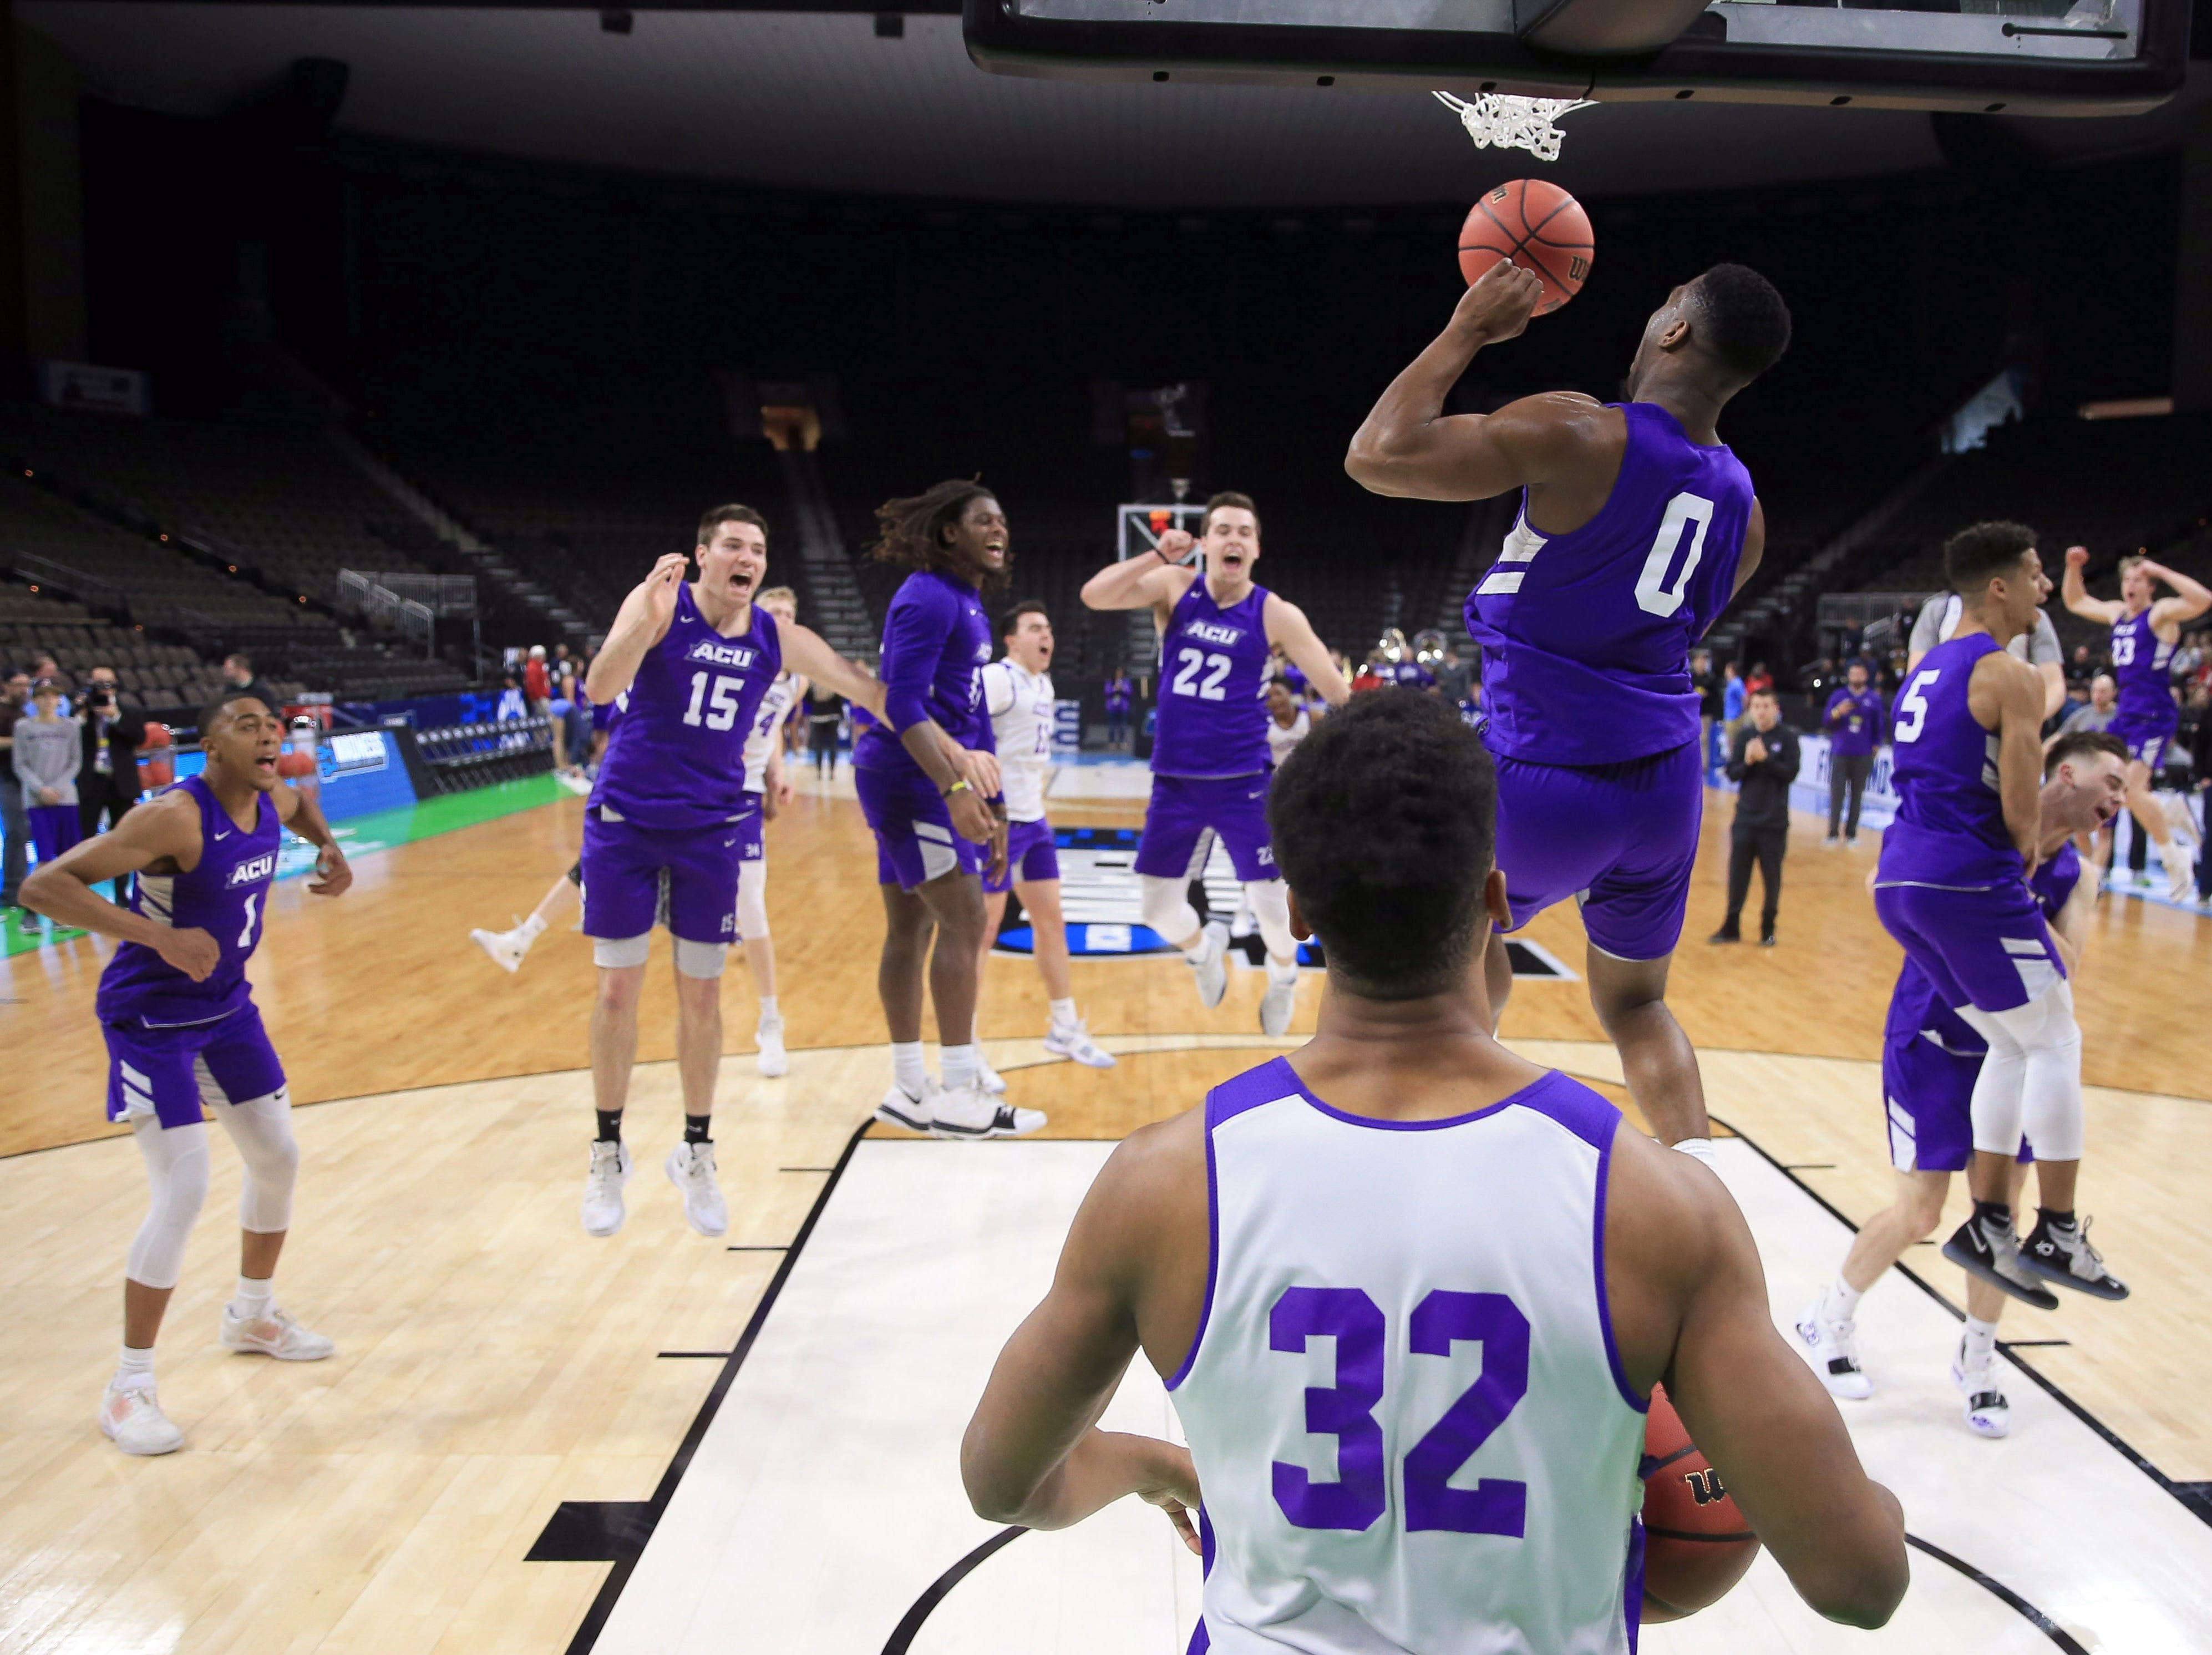 Mar 20, 2019; Jacksonville, FL, USA; Abilene Christian Wildcats guard Jaylen Franklin (0) dunks as the rest of the team celebrates during practice day before the first round of the 2019 NCAA Tournament at Jacksonville Veterans Memorial Arena. Mandatory Credit: Matt Stamey-USA TODAY Sports